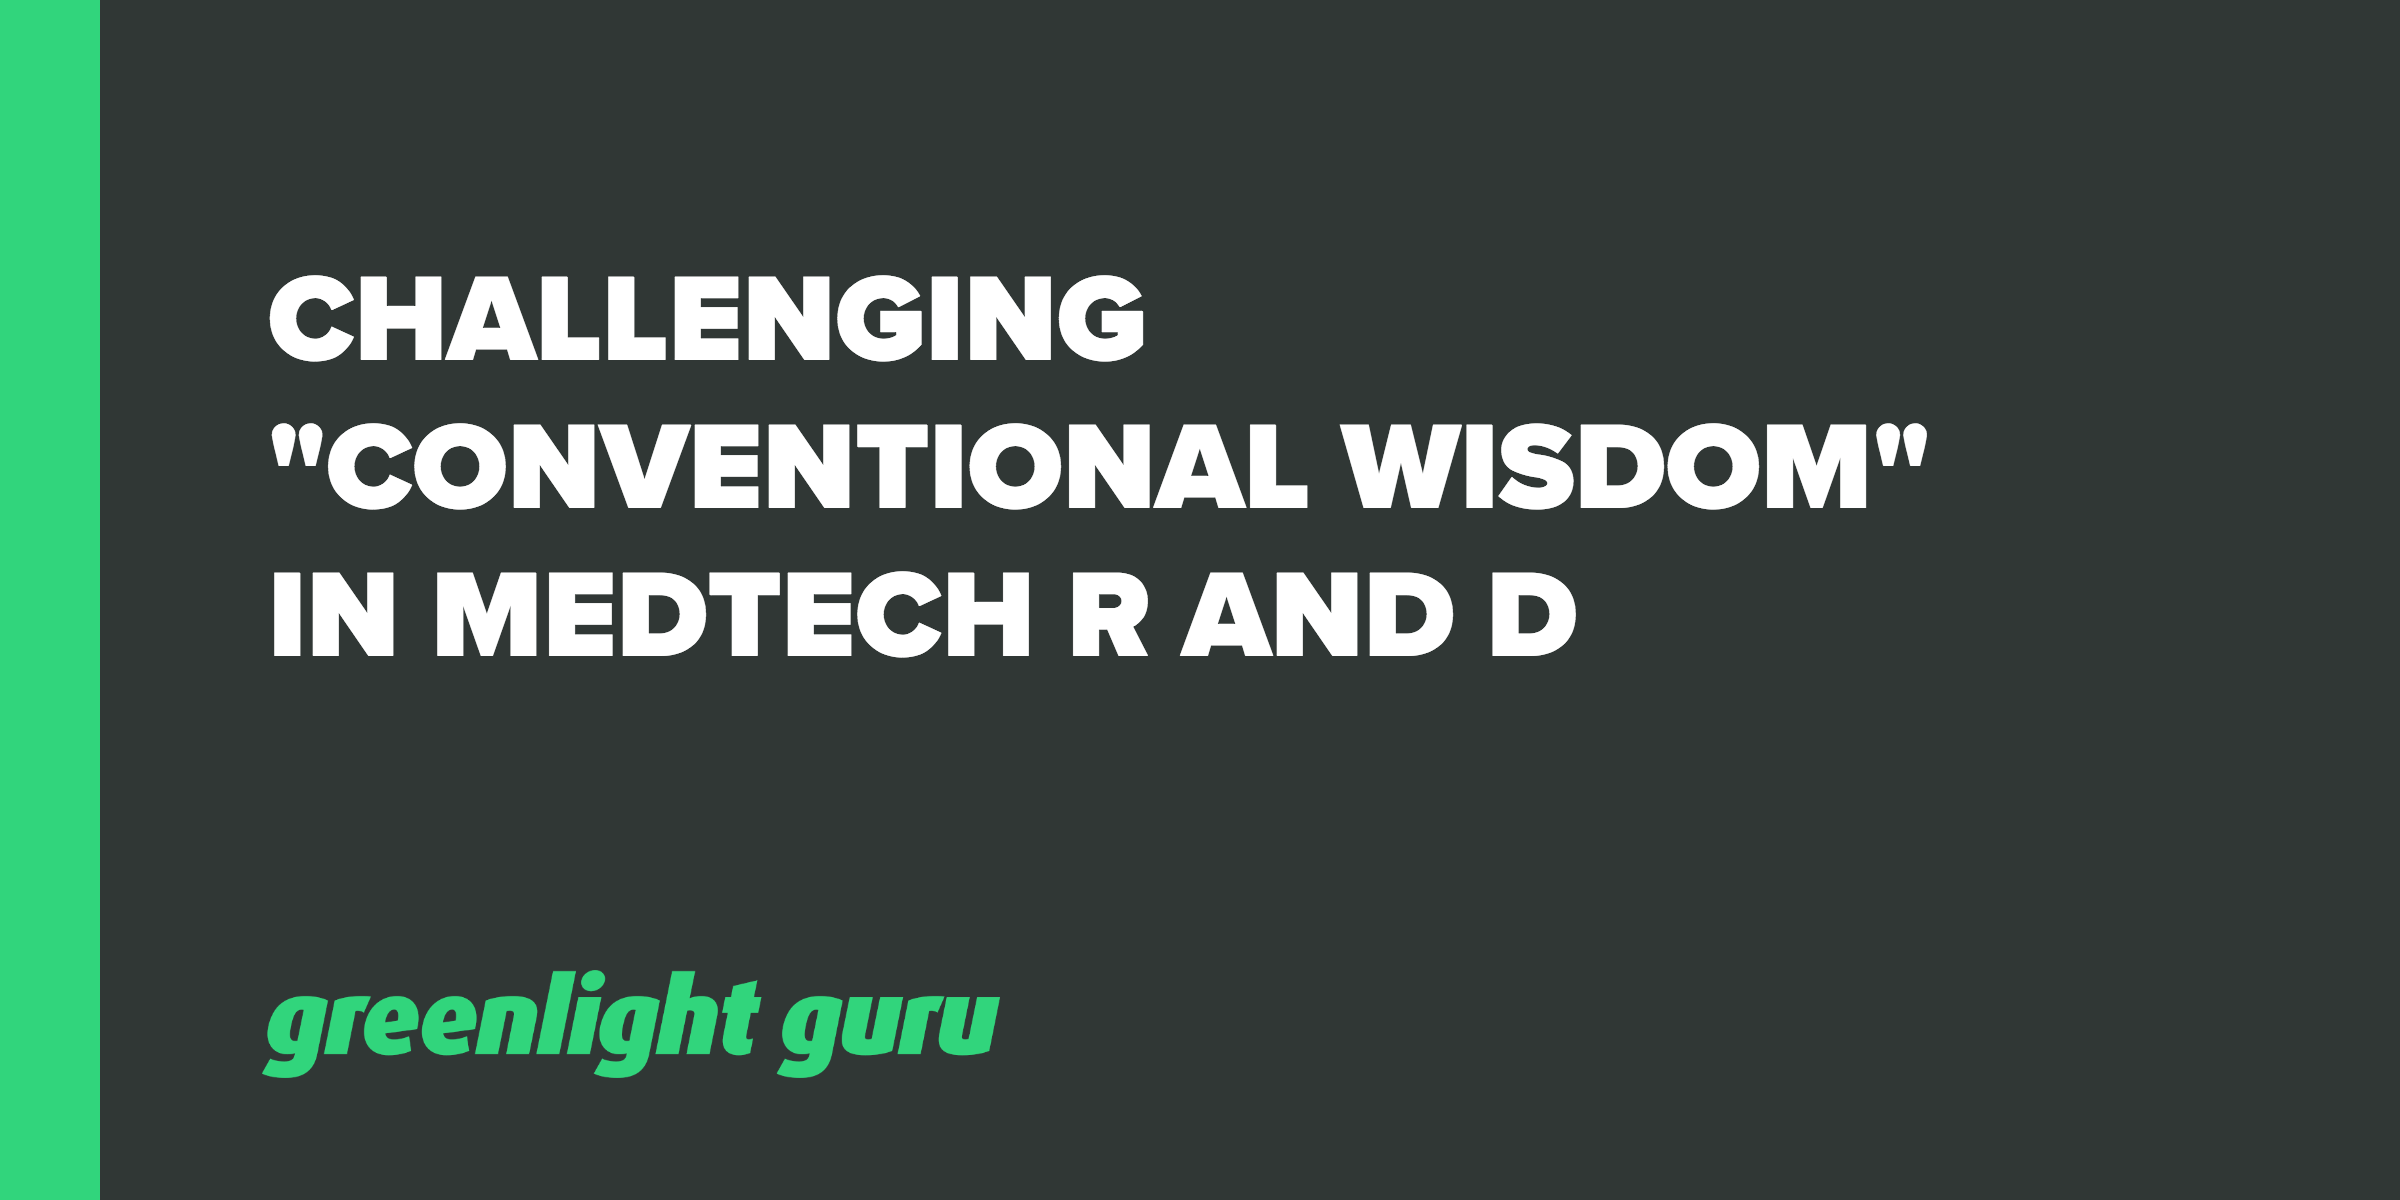 Trouble With Conventional Wisdom Is >> Challenging Conventional Wisdom In Medtech R And D